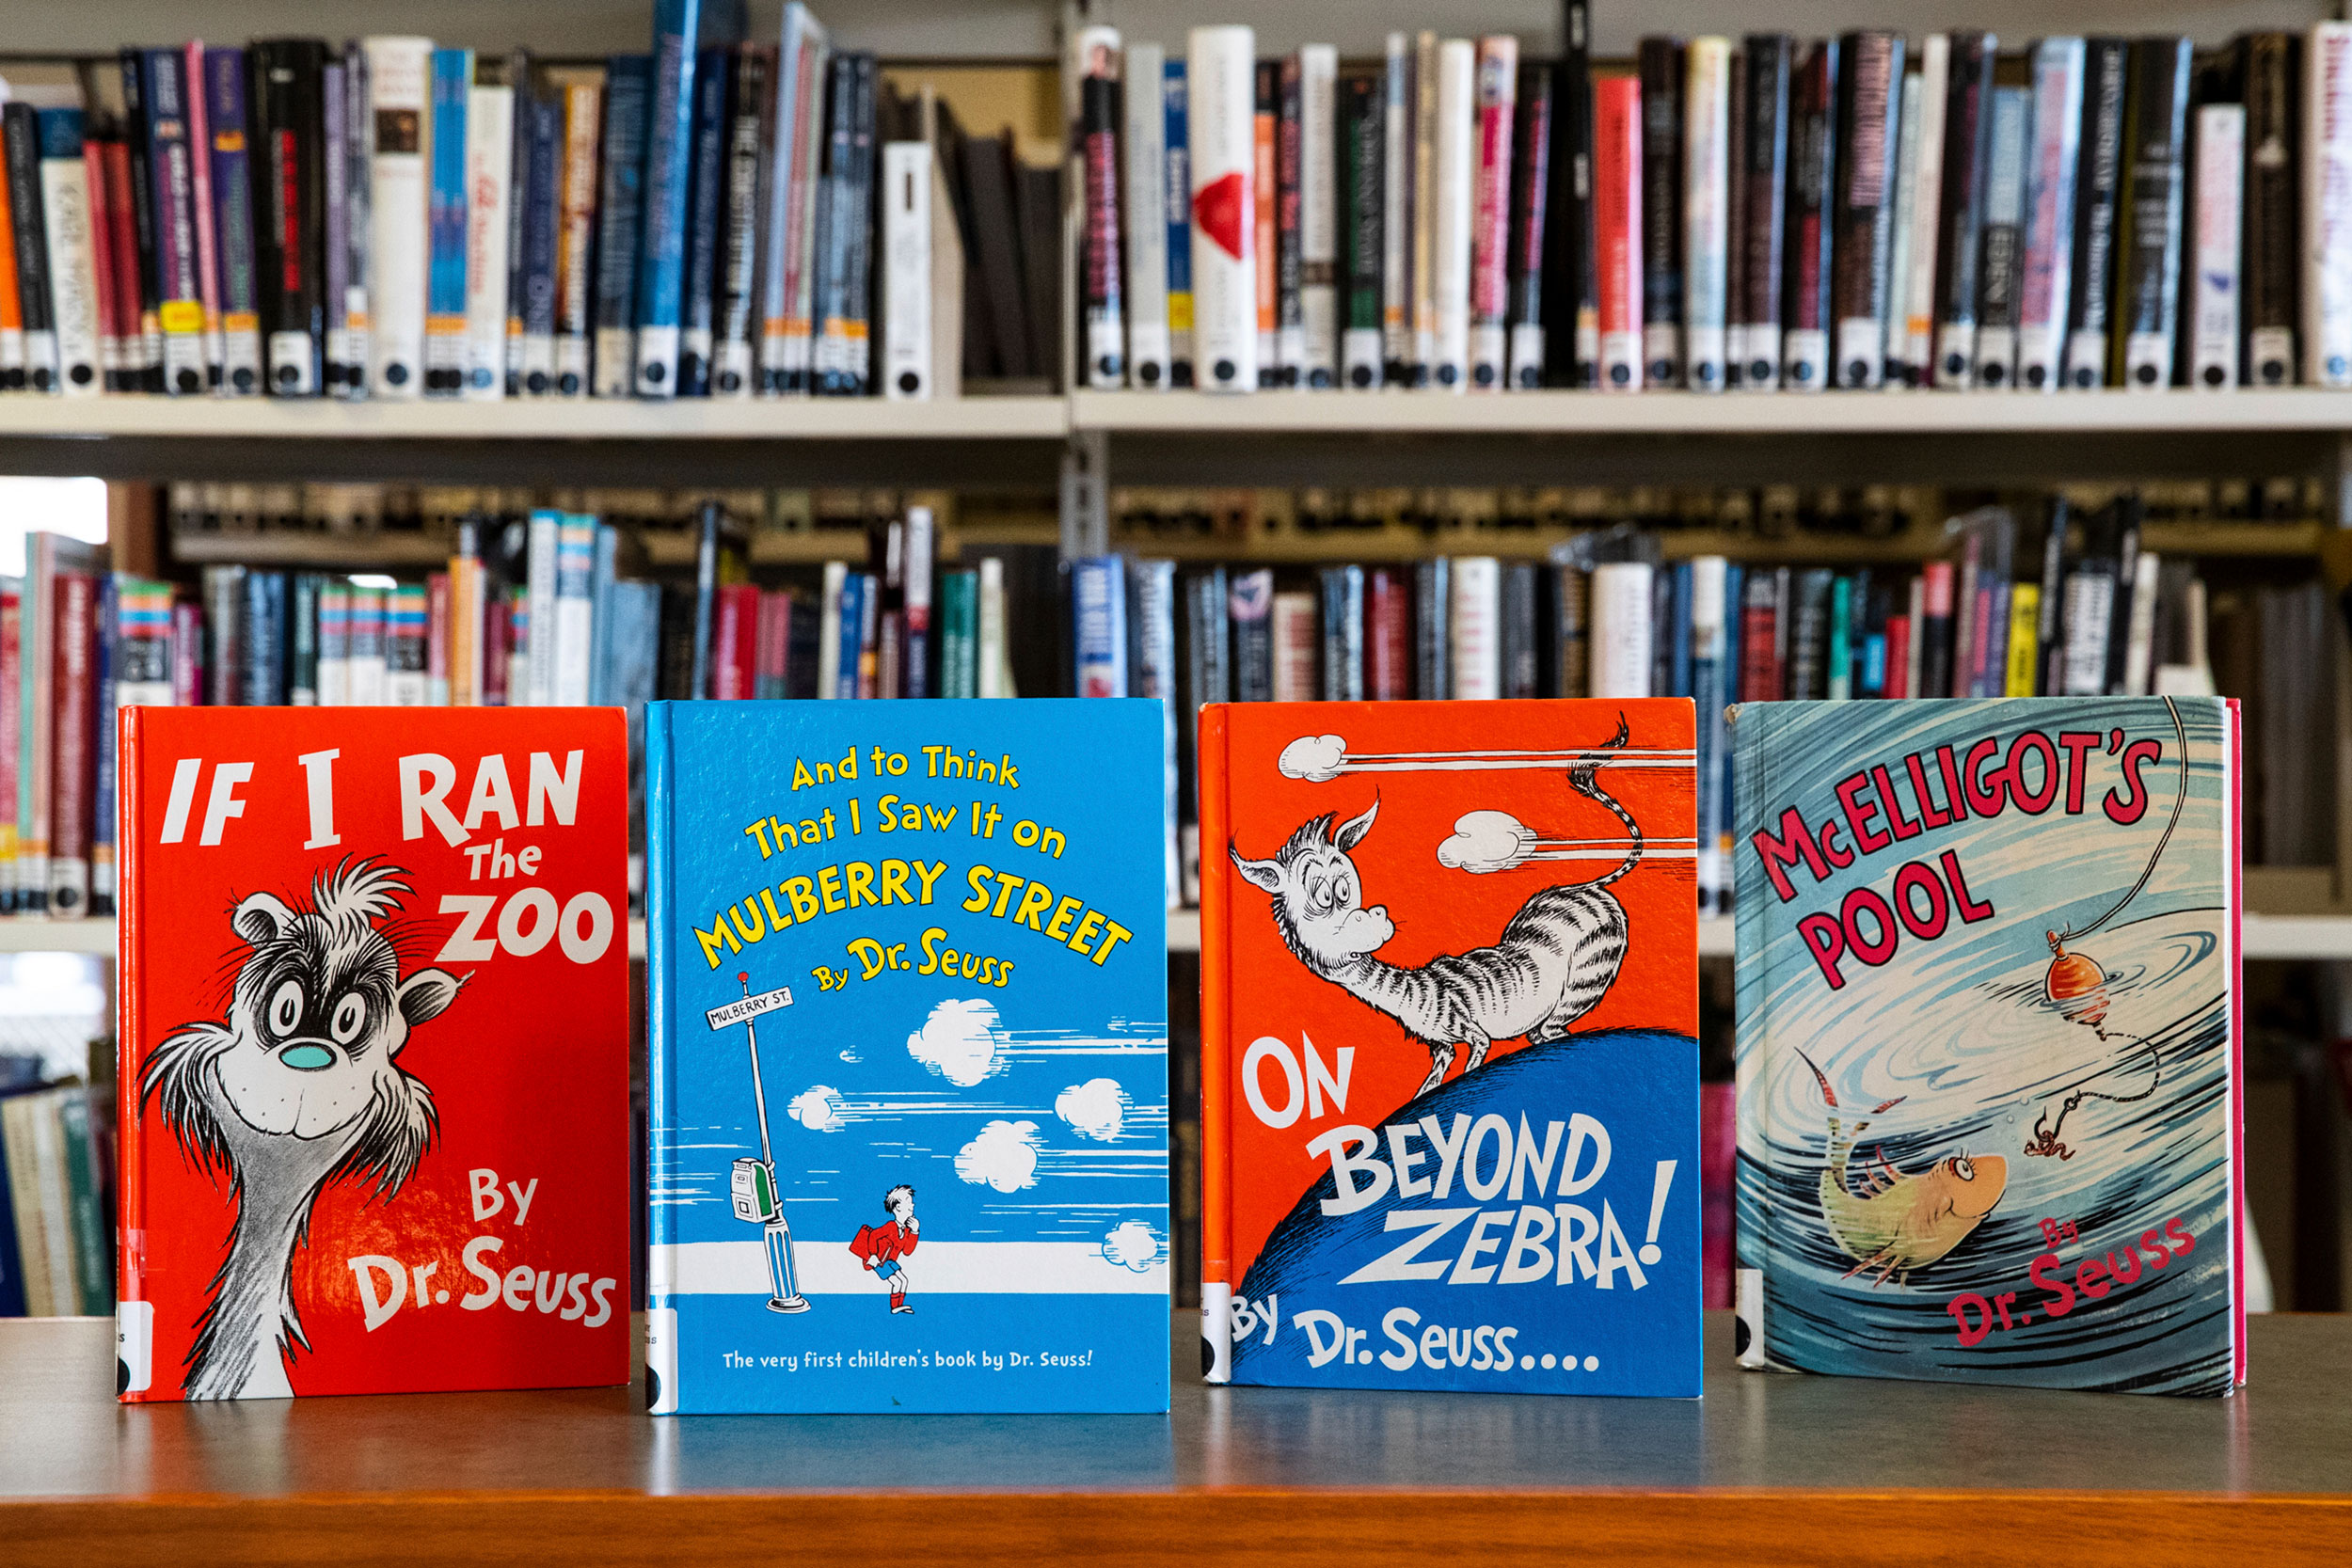 Libraries oppose censorship. So they're getting creative when it comes to offensive kids' books